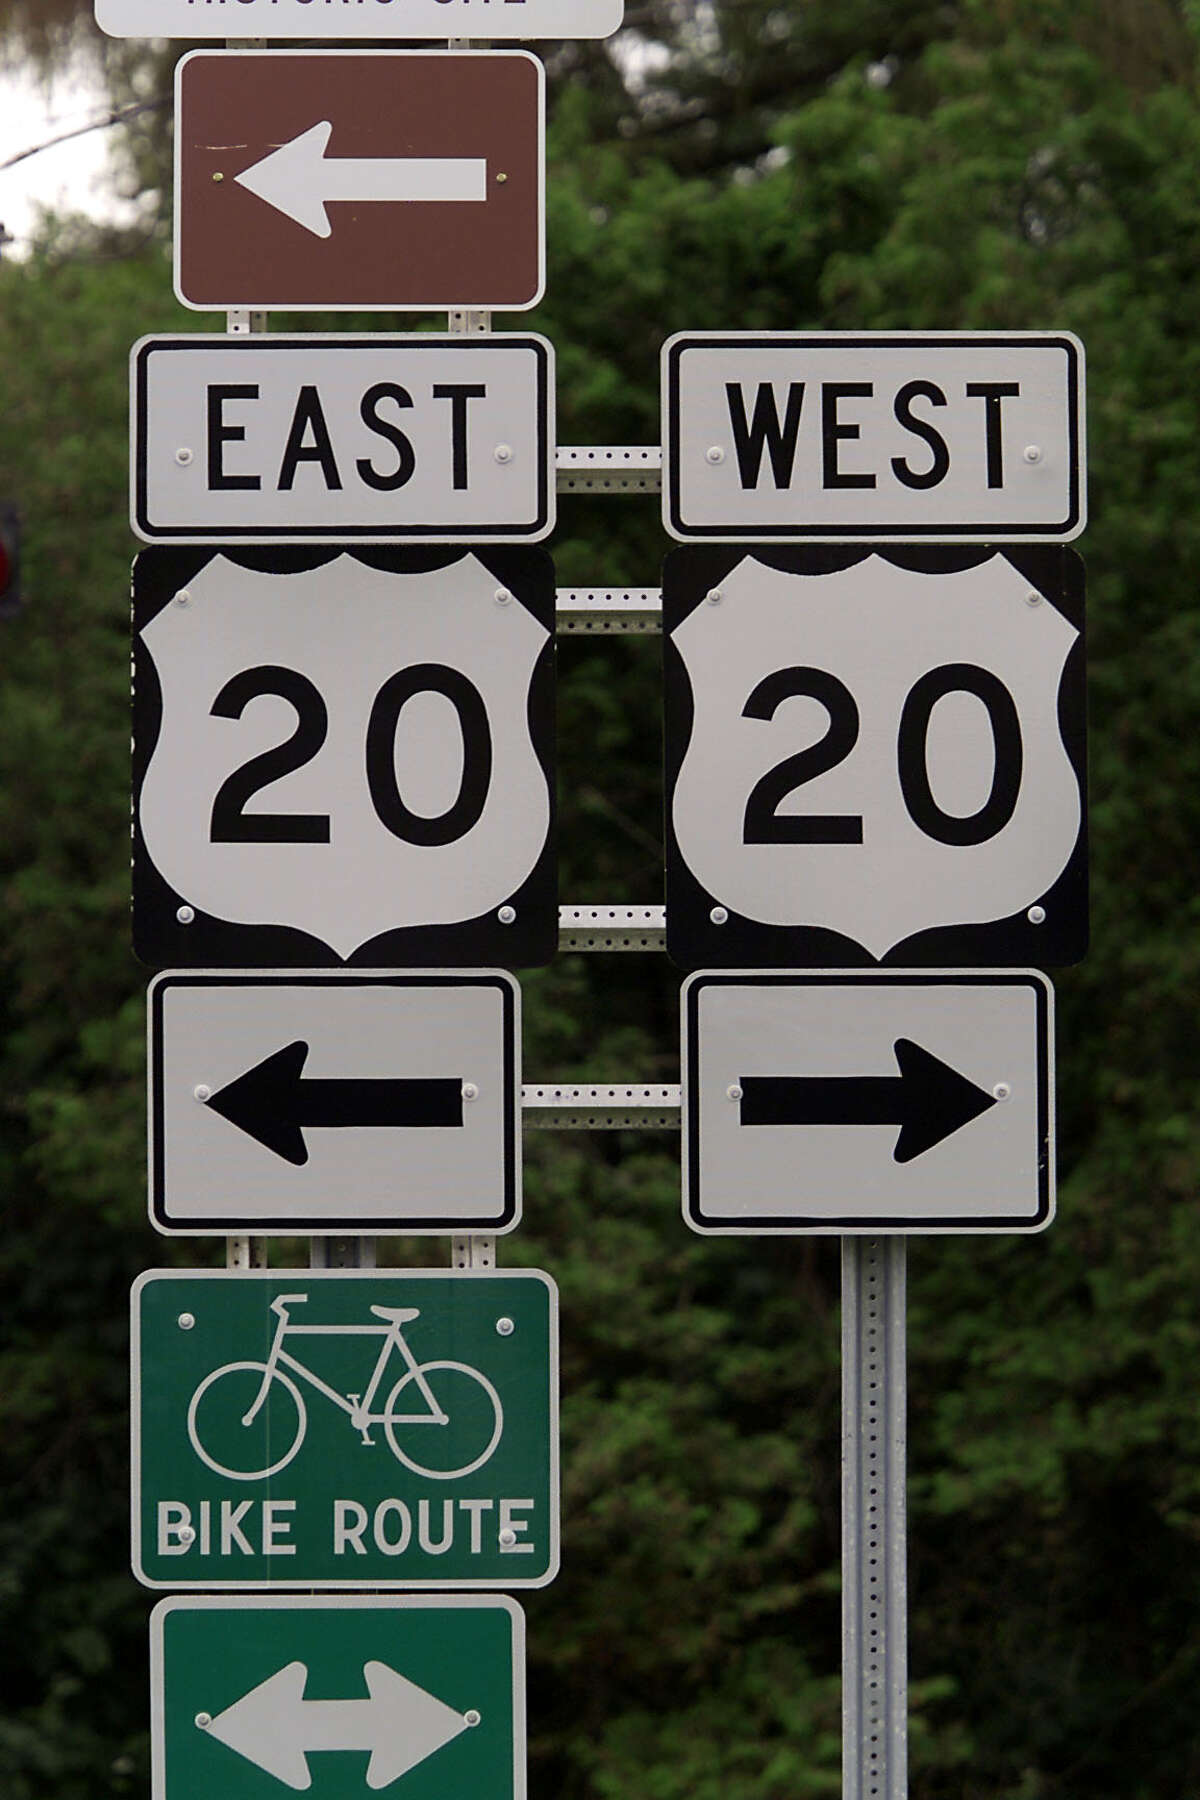 -U.S. Route 20 road signs are seen near Cazenovia, N.Y., in this photo taken July 24, 2000. U.S. 20 is a trip through New York history that provides travelers with breathtaking countryside vistas, charming historic villages and roadside curiosities from one end of the state to the other. (AP Photo/Michael Okoniewski) ORG XMIT: MER2015082610454802